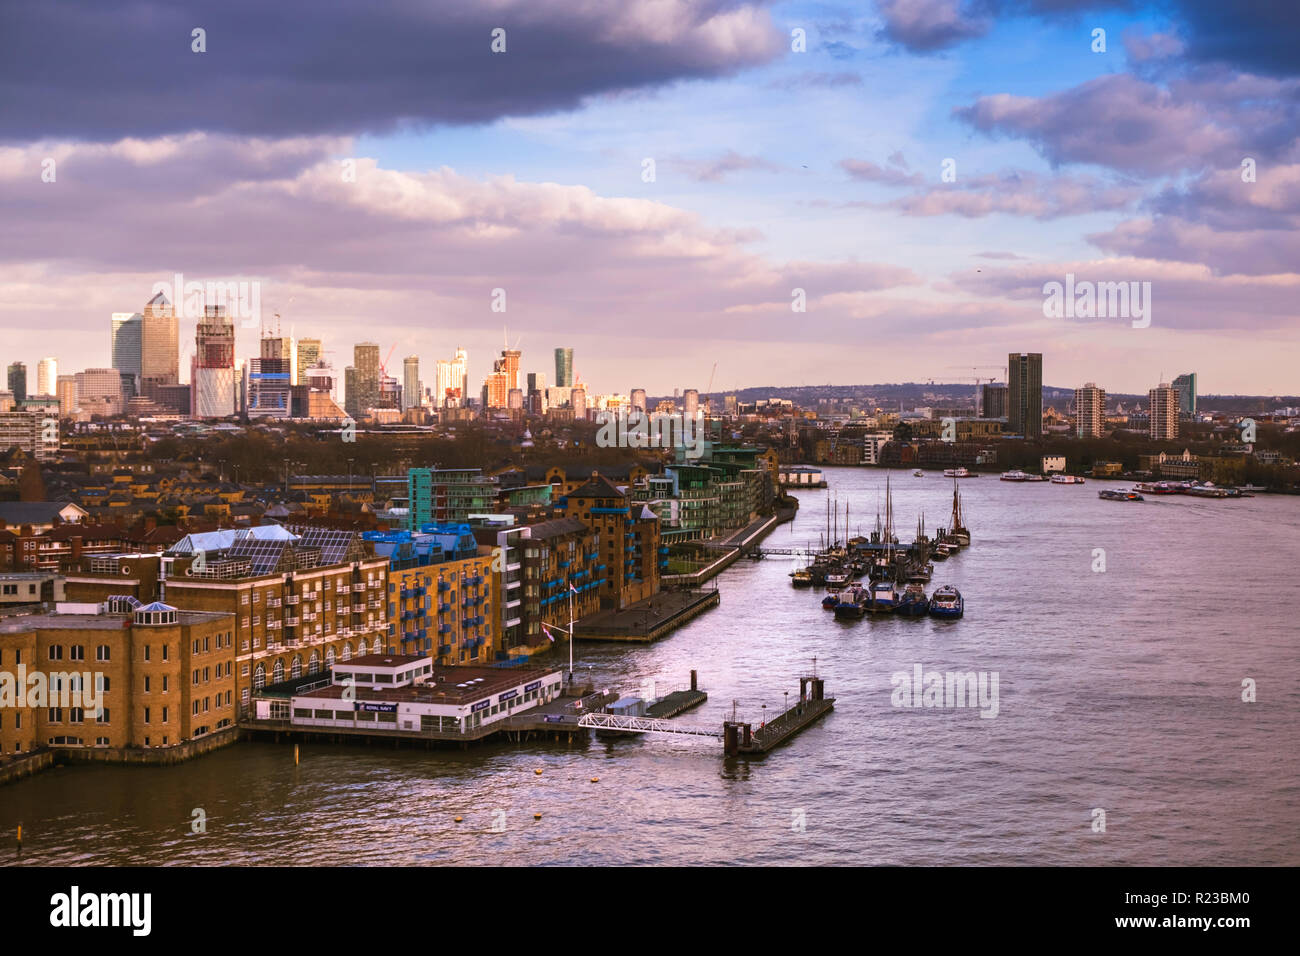 London skyline in sunset light. View towards the docklands and skyscrapers seen from the Tower Bridge in sunset light - Stock Image